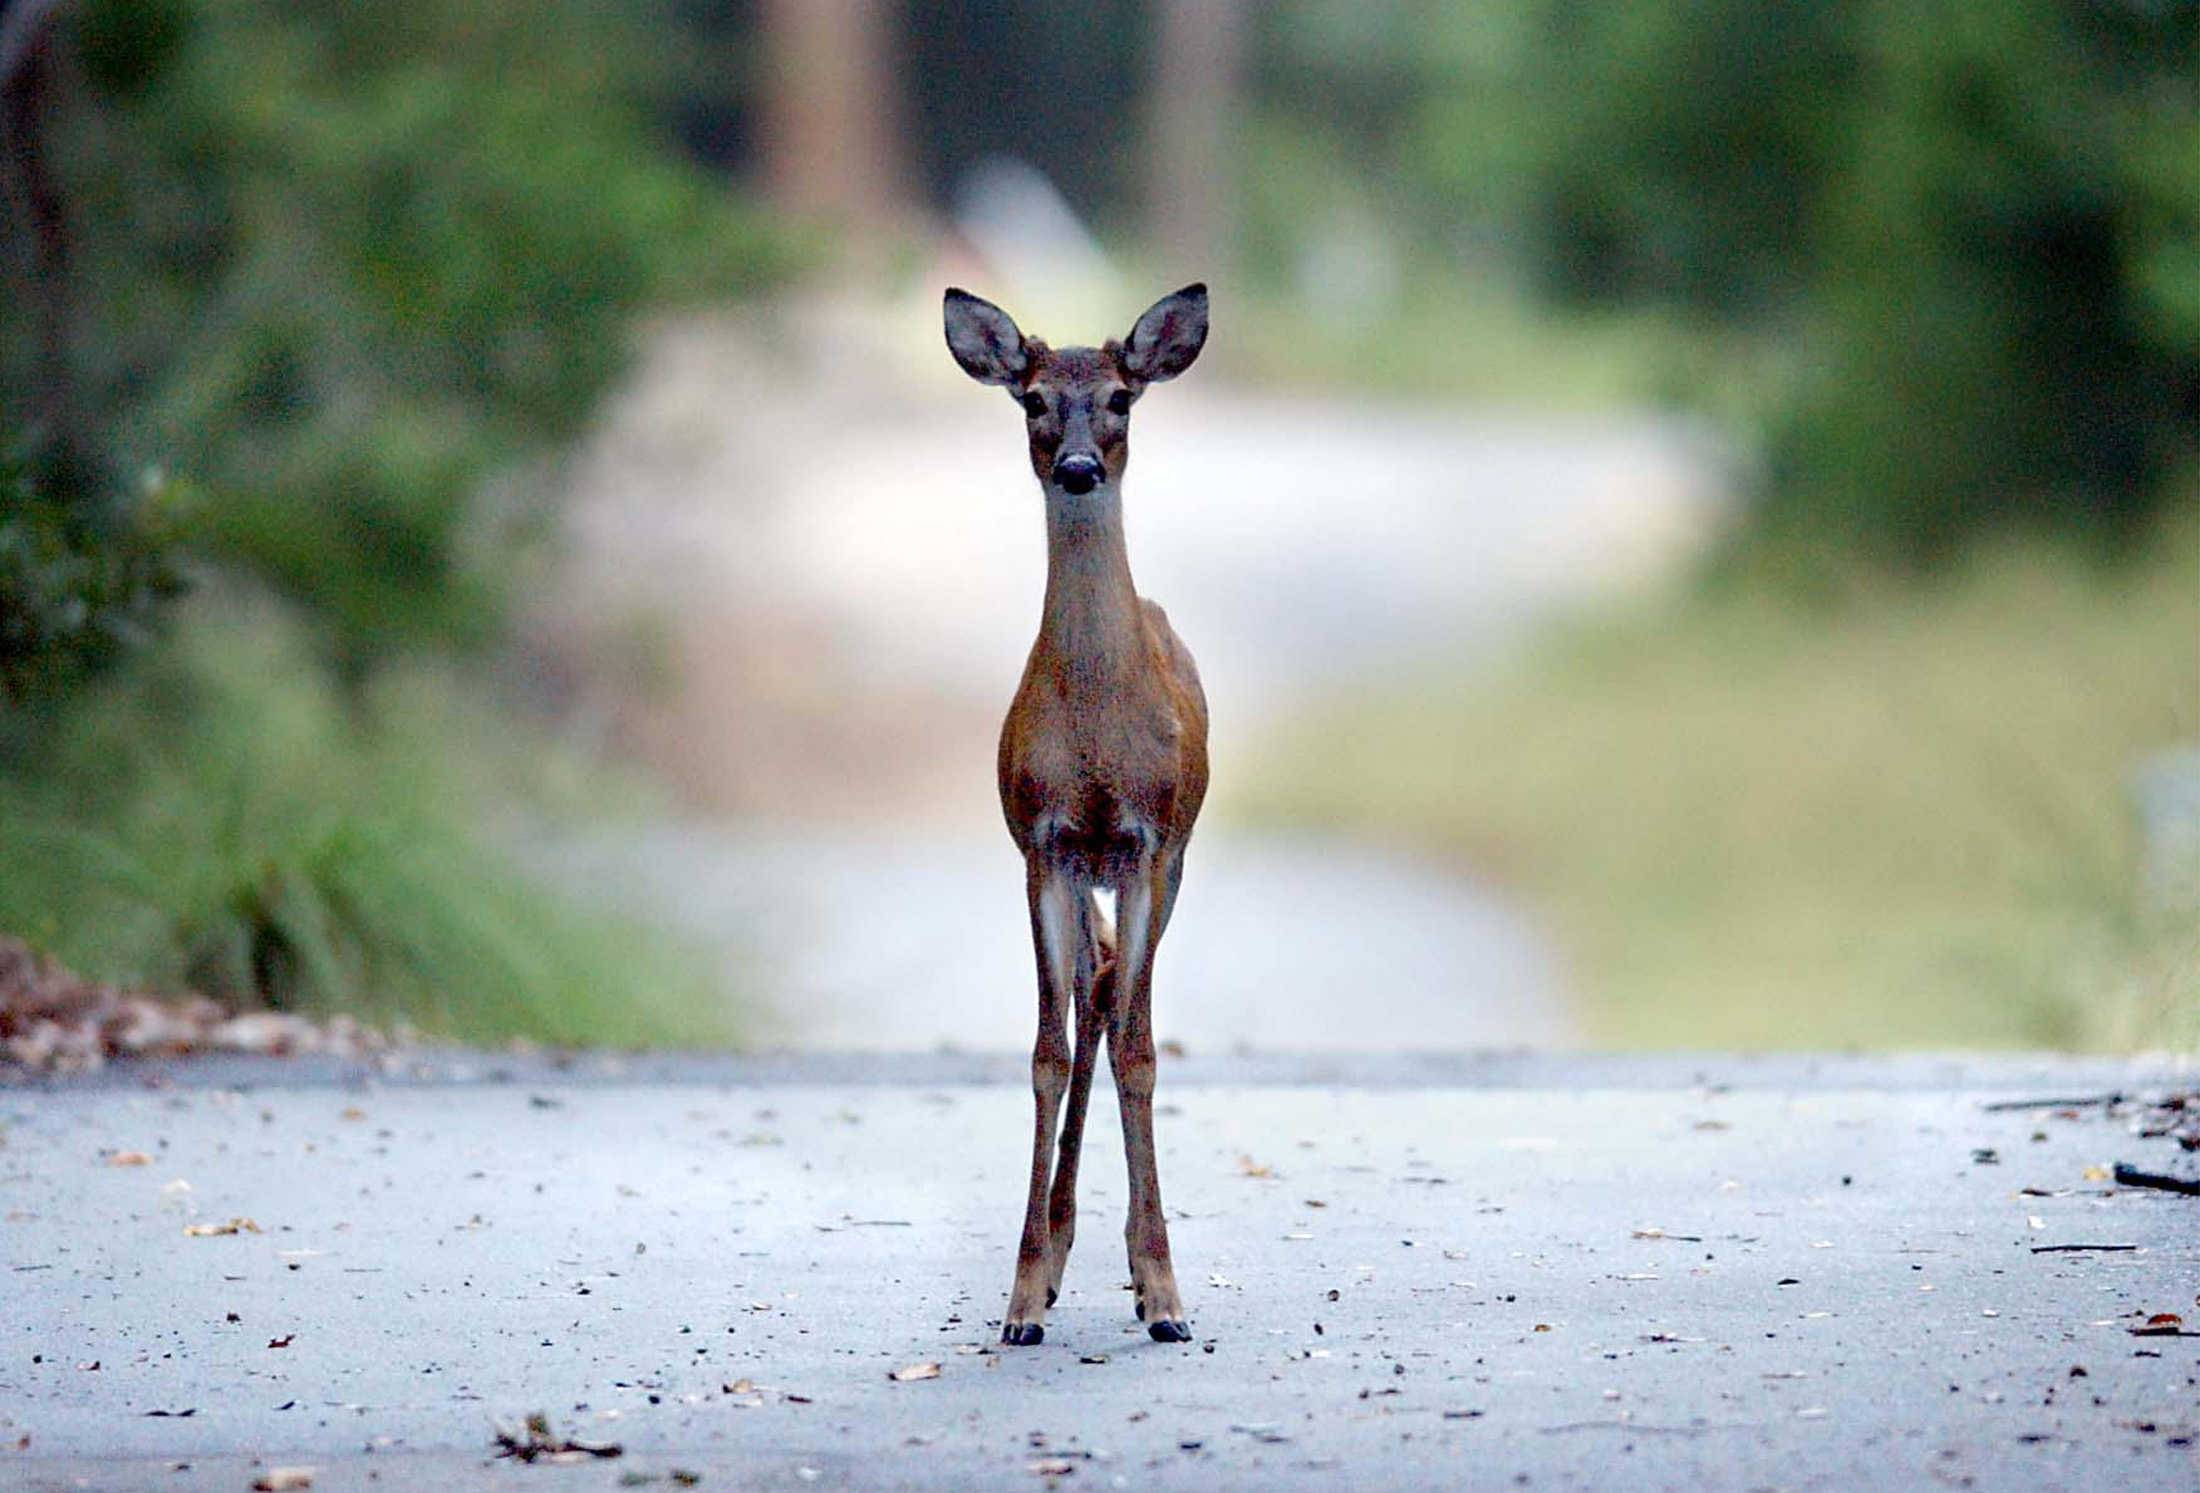 Drivers must always be attentive and ready for anything. Deer cause more human deaths each year than any other animal.